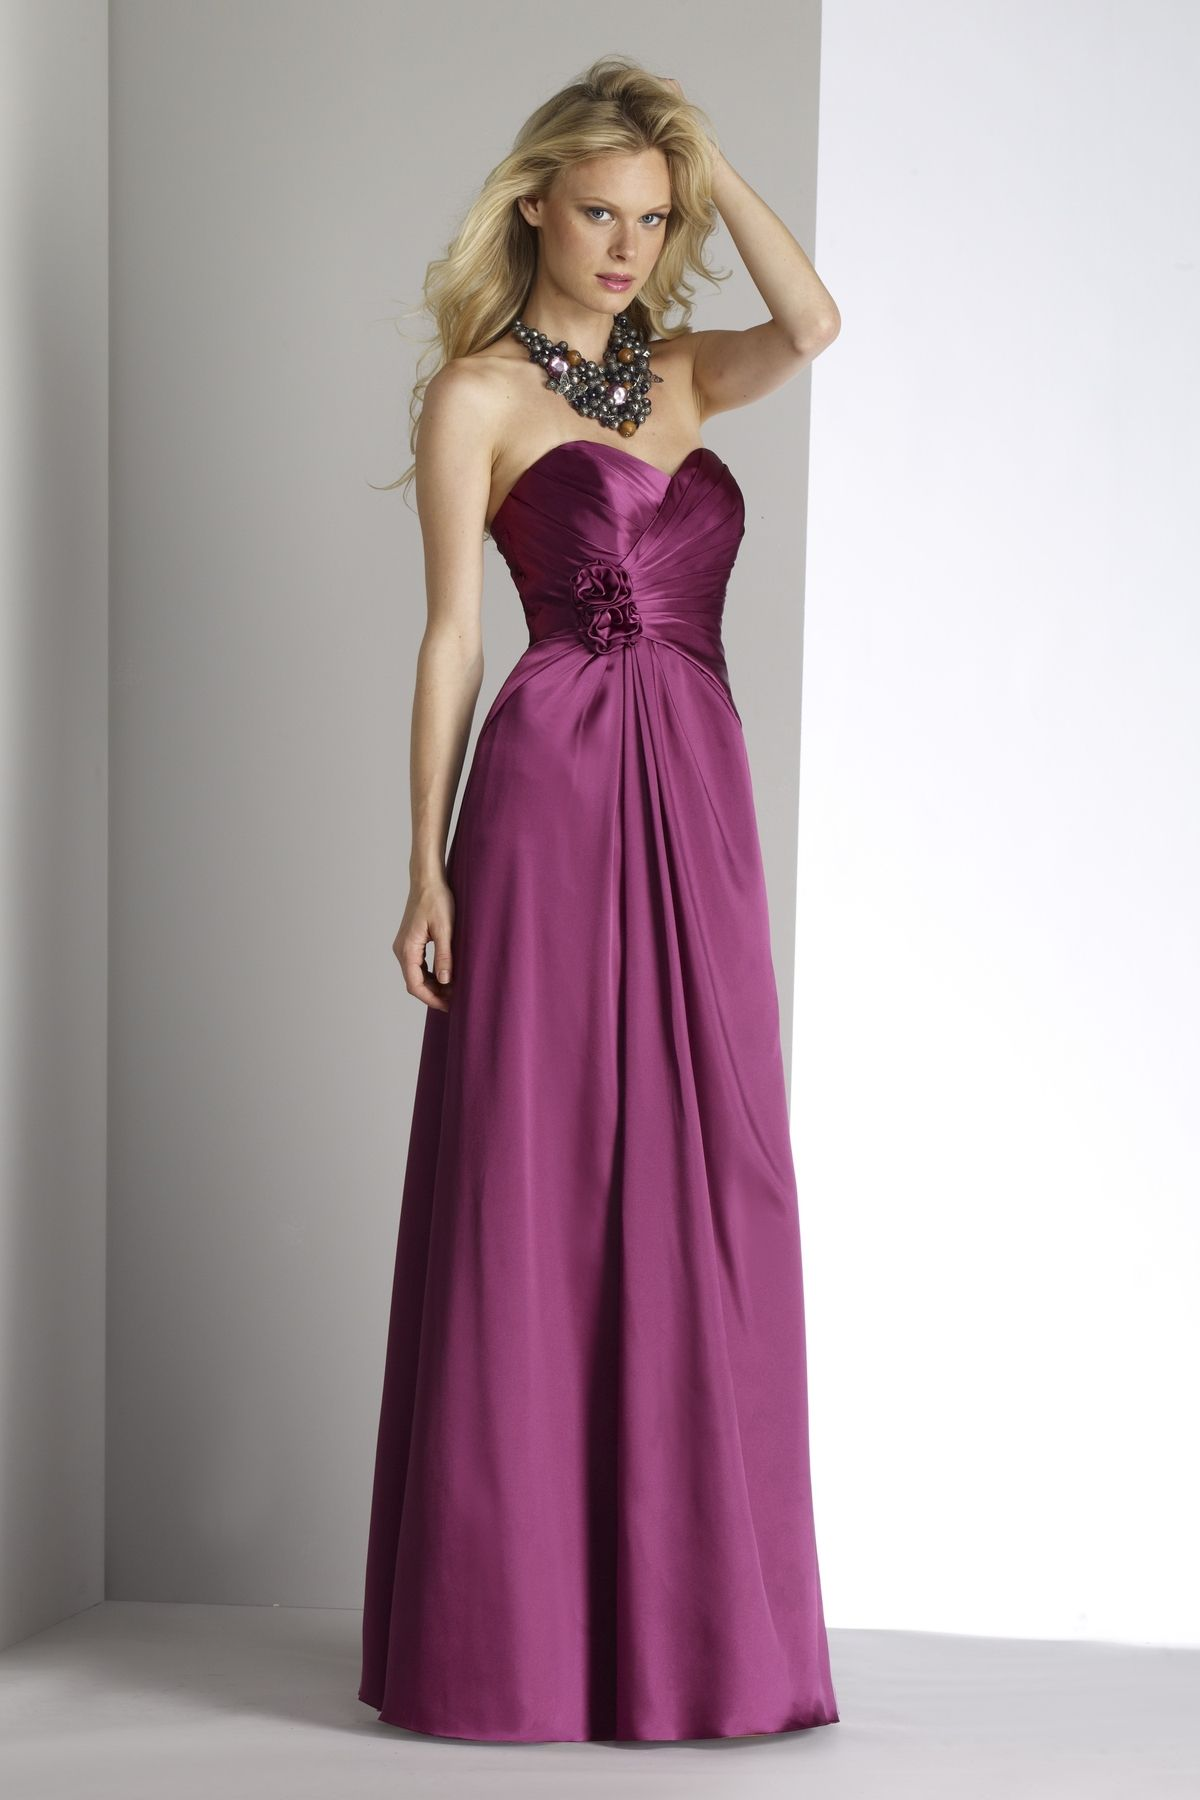 Bridesmaid Dresses : Special Occasion Dresses : Prom Dresses : Style ...